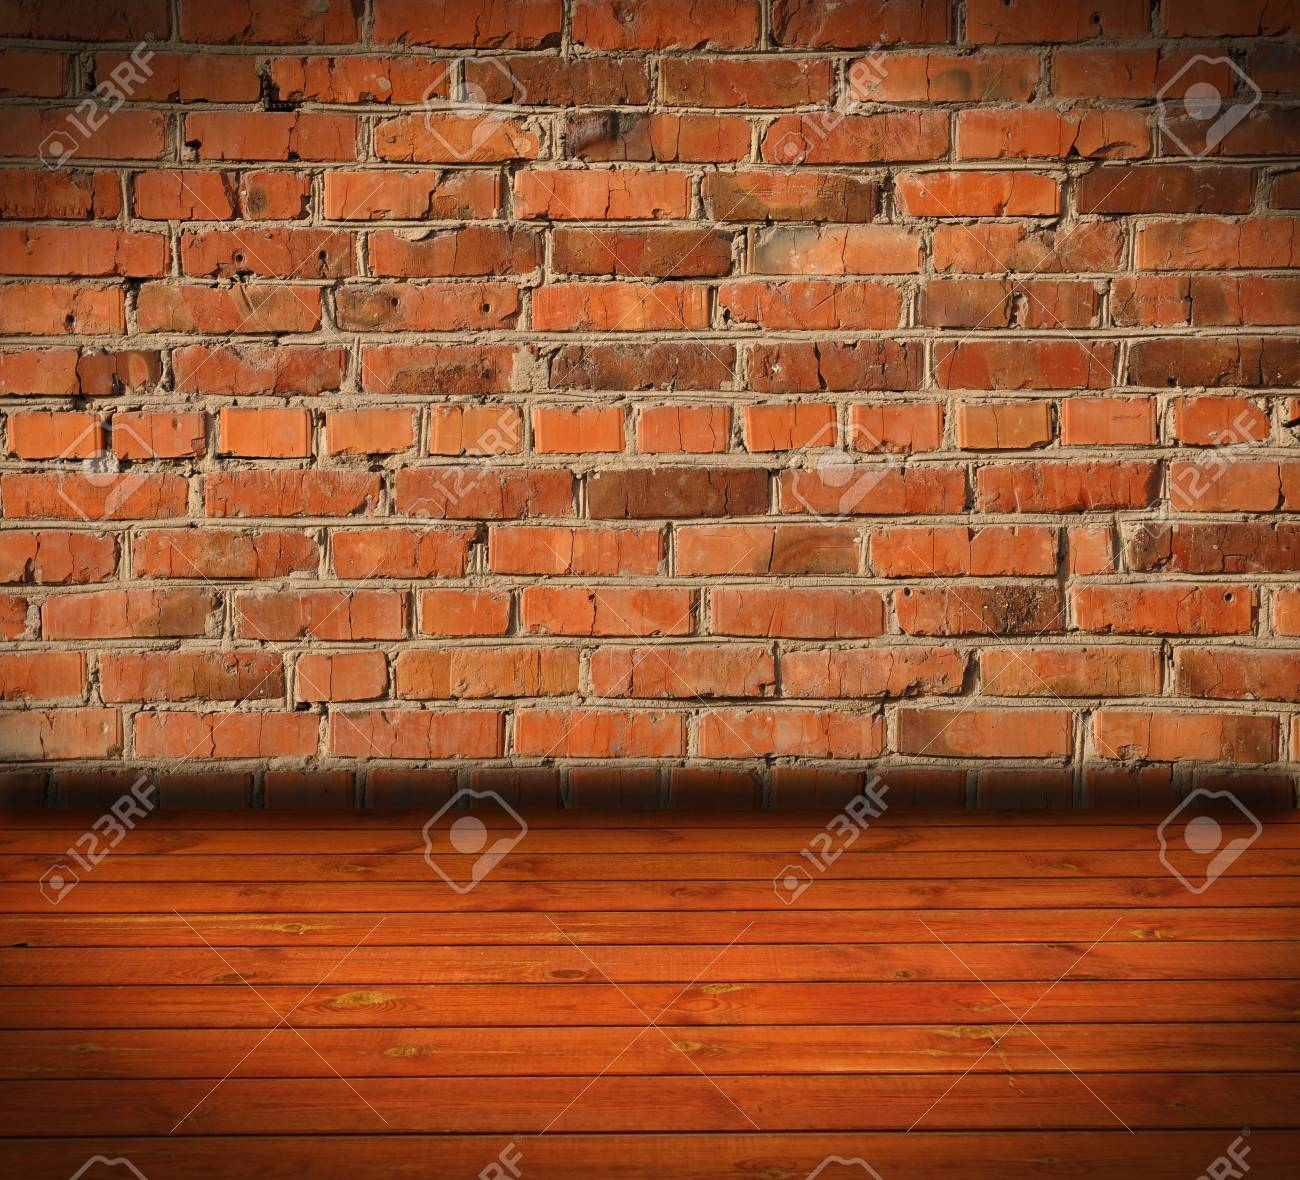 old room with a brick wall and floor Stock Photo - 8229103